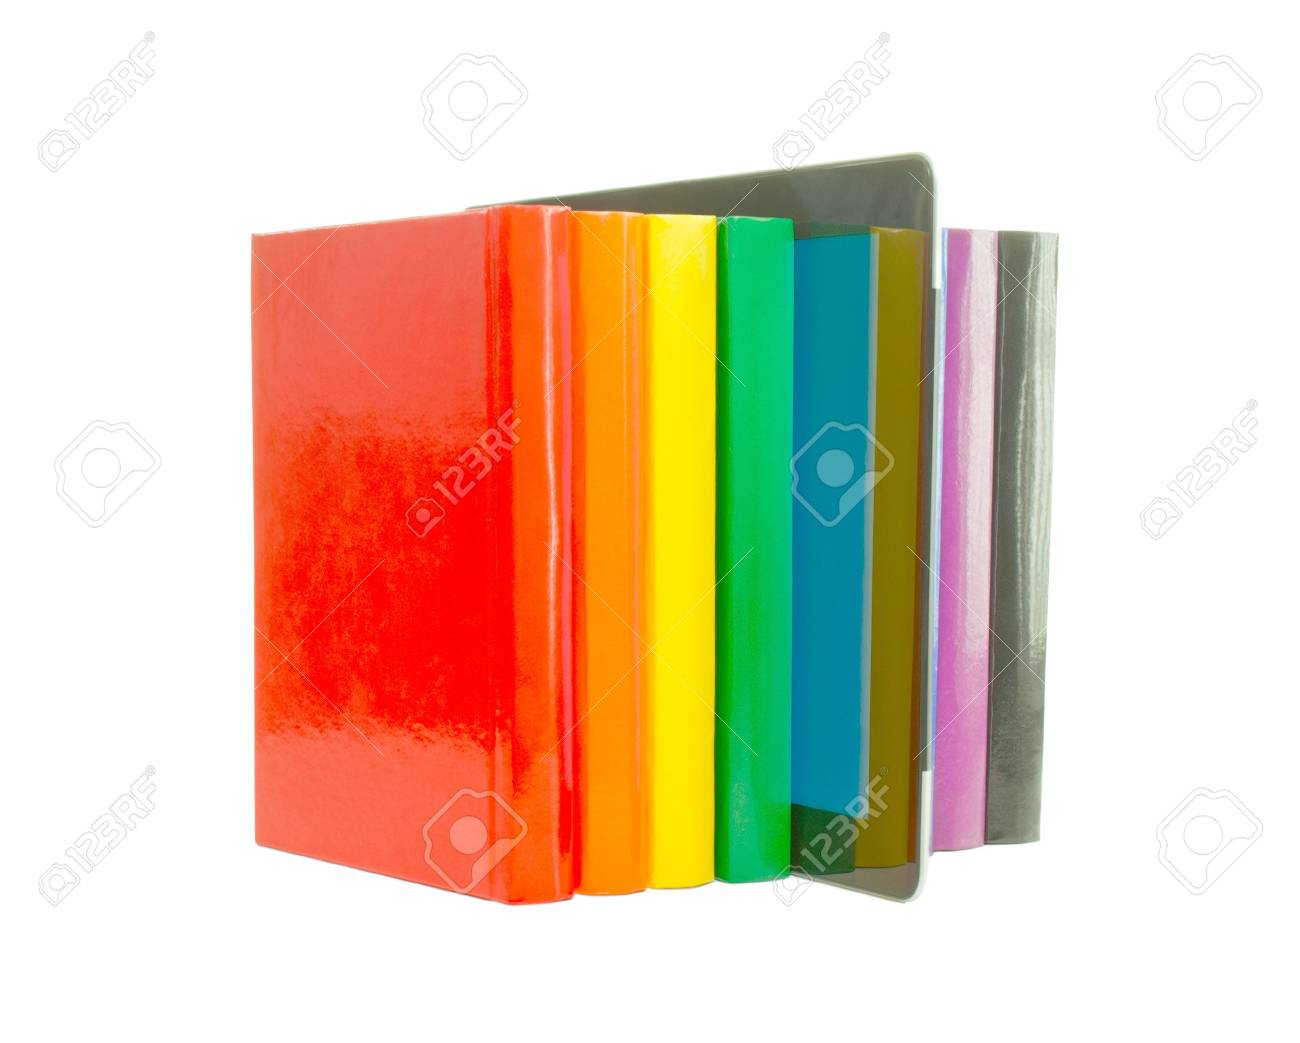 Row of colorful books and electronic book reader over white background Stock Photo - 11885503